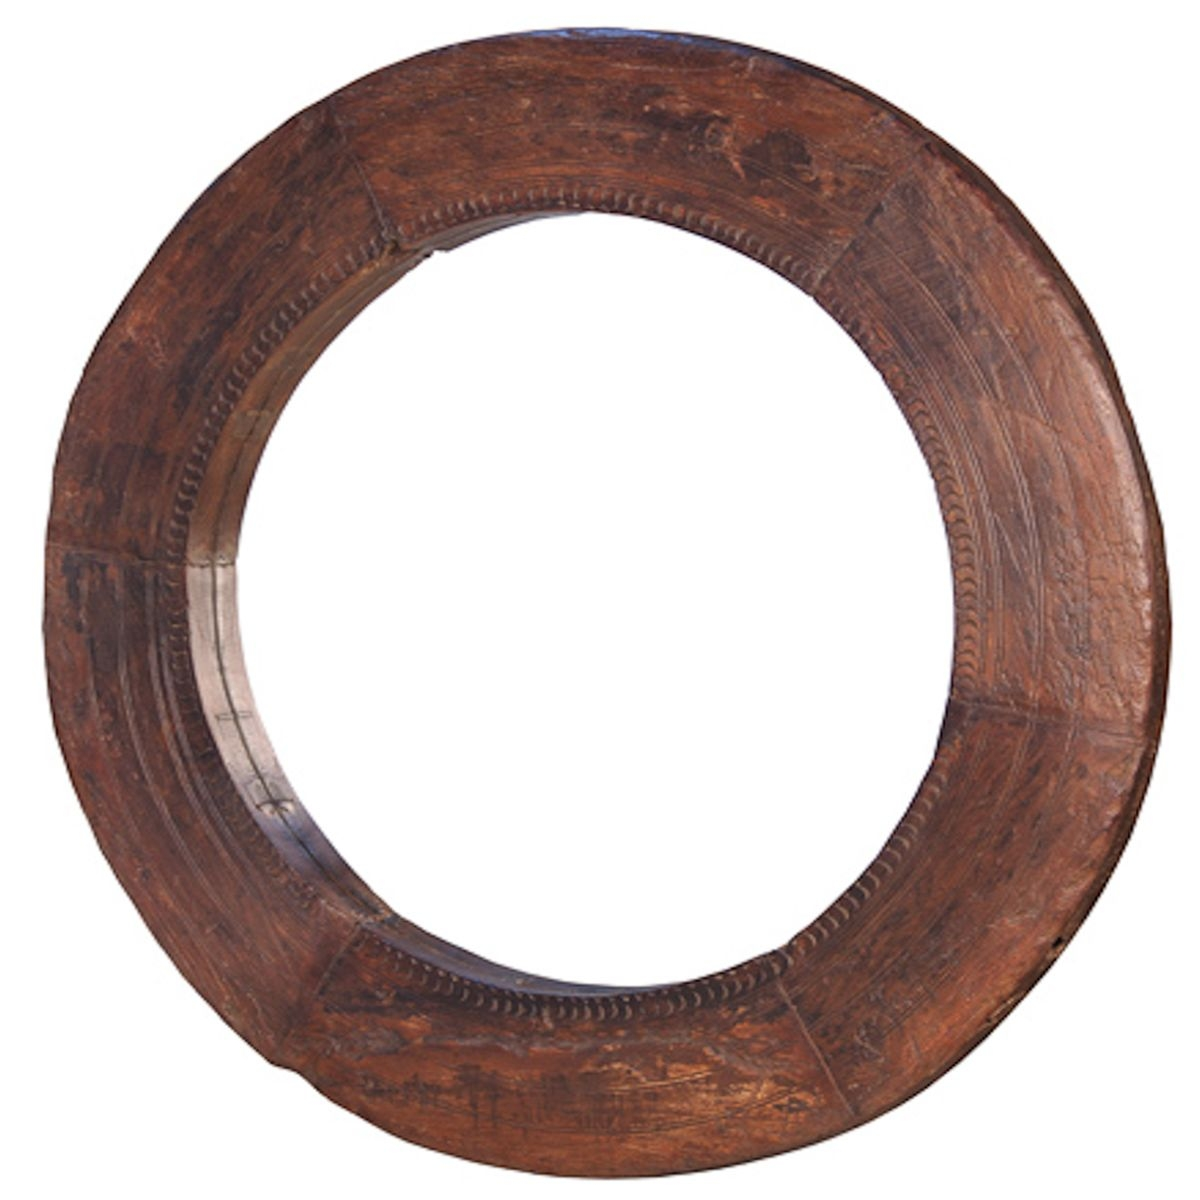 Ver 1 000 Bilder Om Misc Mirrors P Pinterestsnickeri Vintage Within Large Round Wooden Mirror (Image 15 of 15)